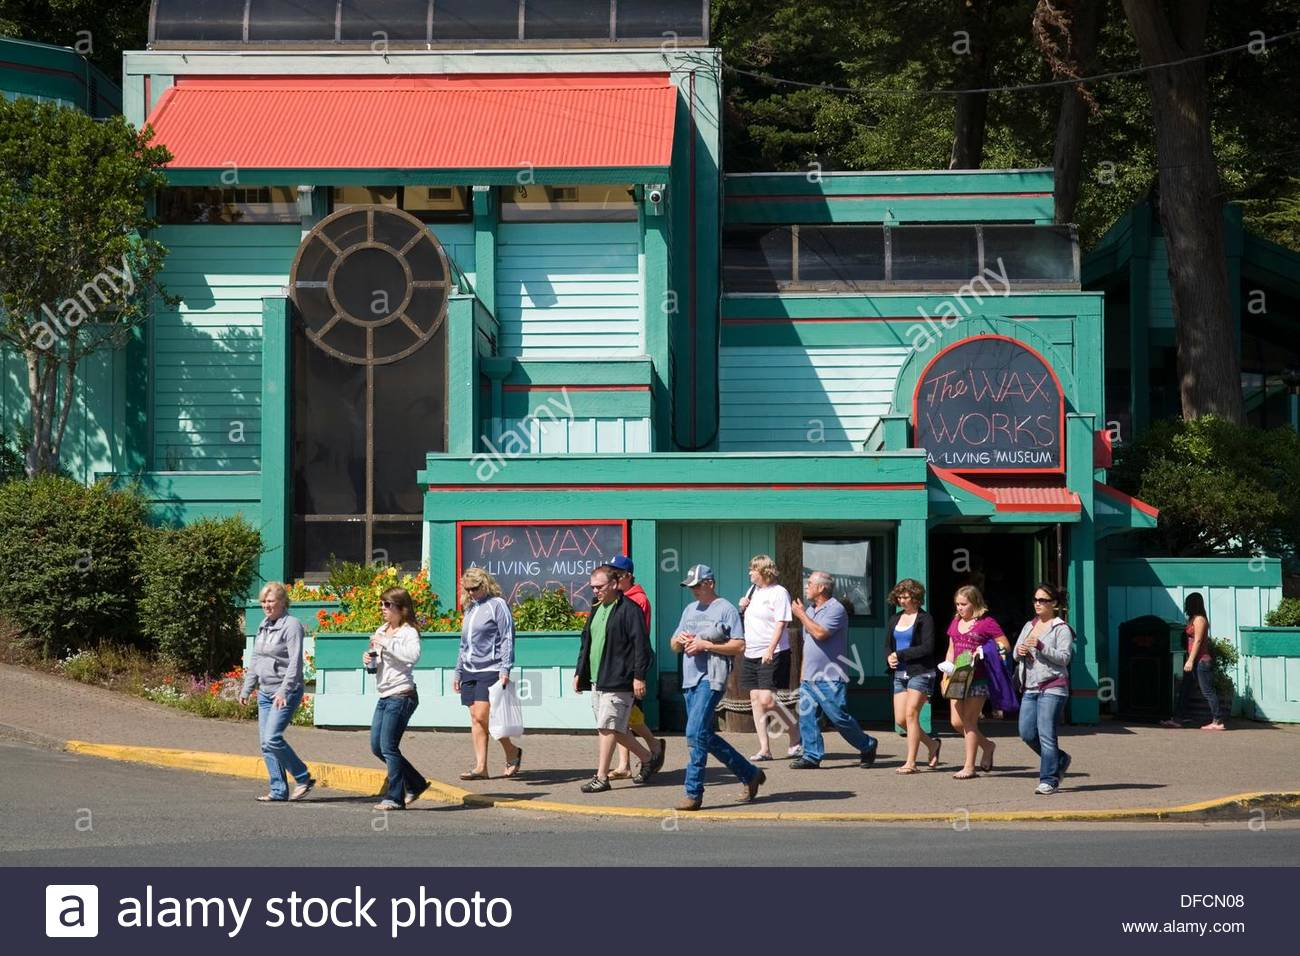 The Wax Works museum in the bay front area of Newport - Stock Image